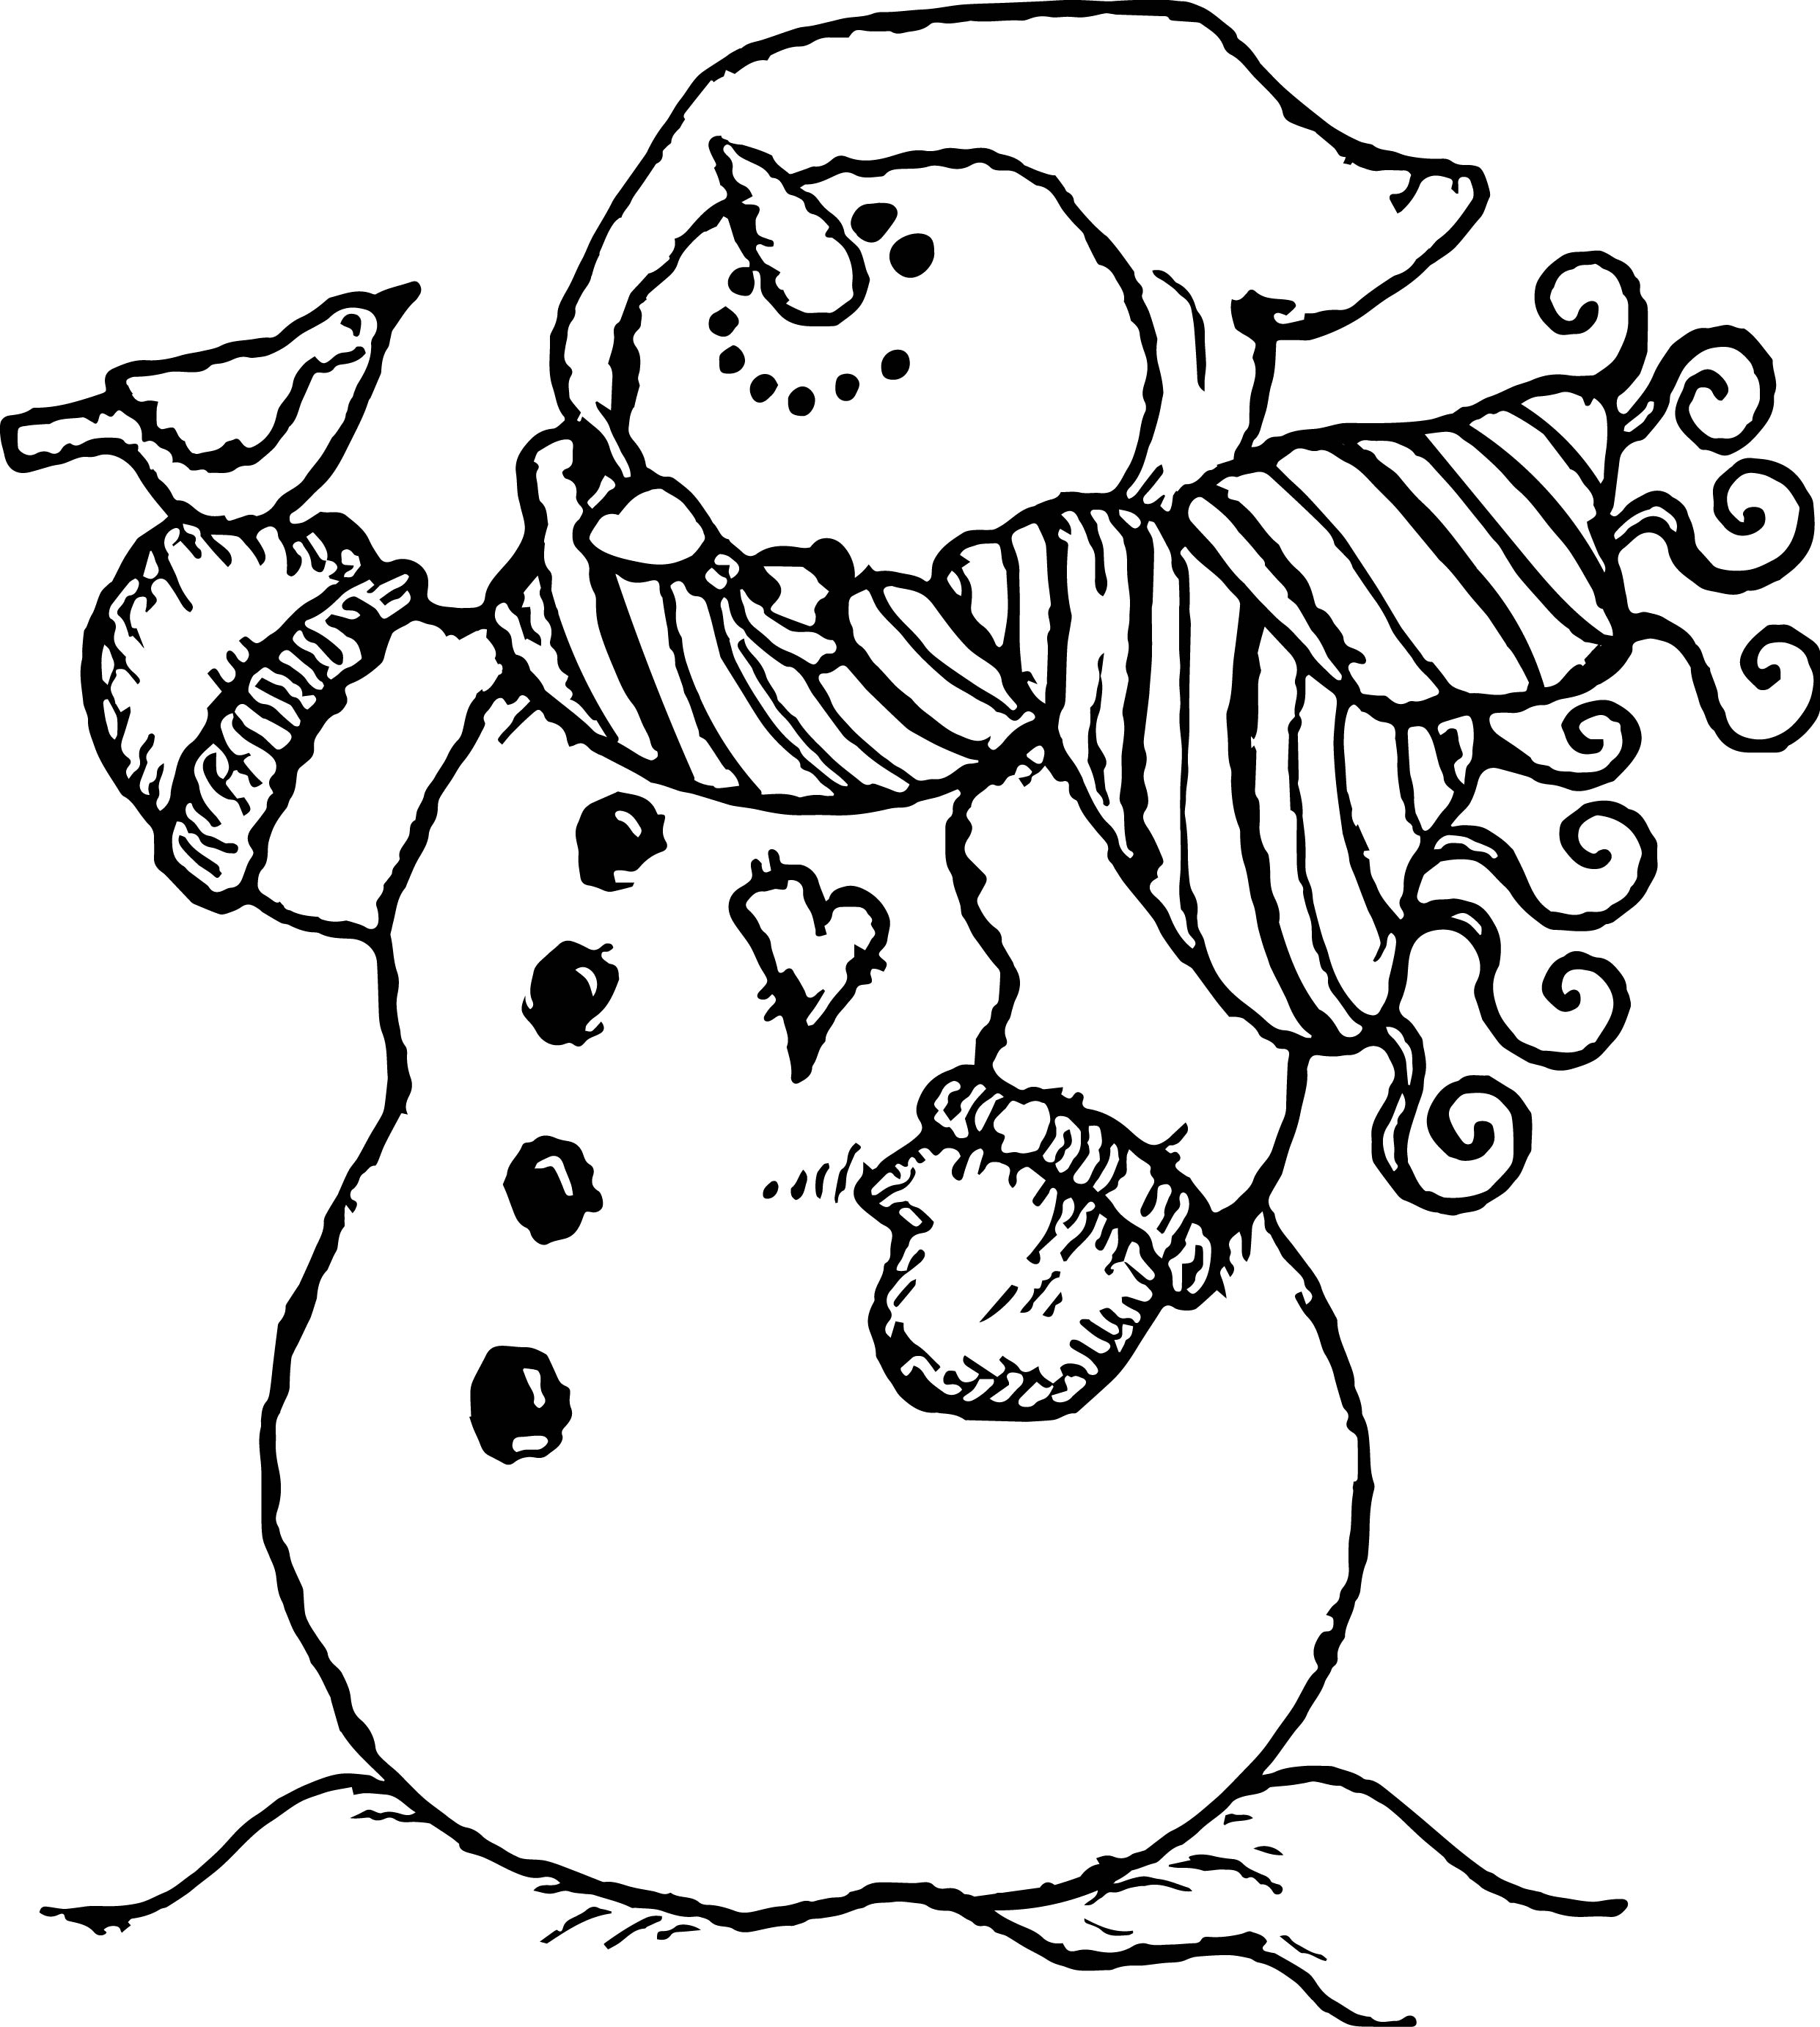 bird and snow man coloring page wecoloringpage